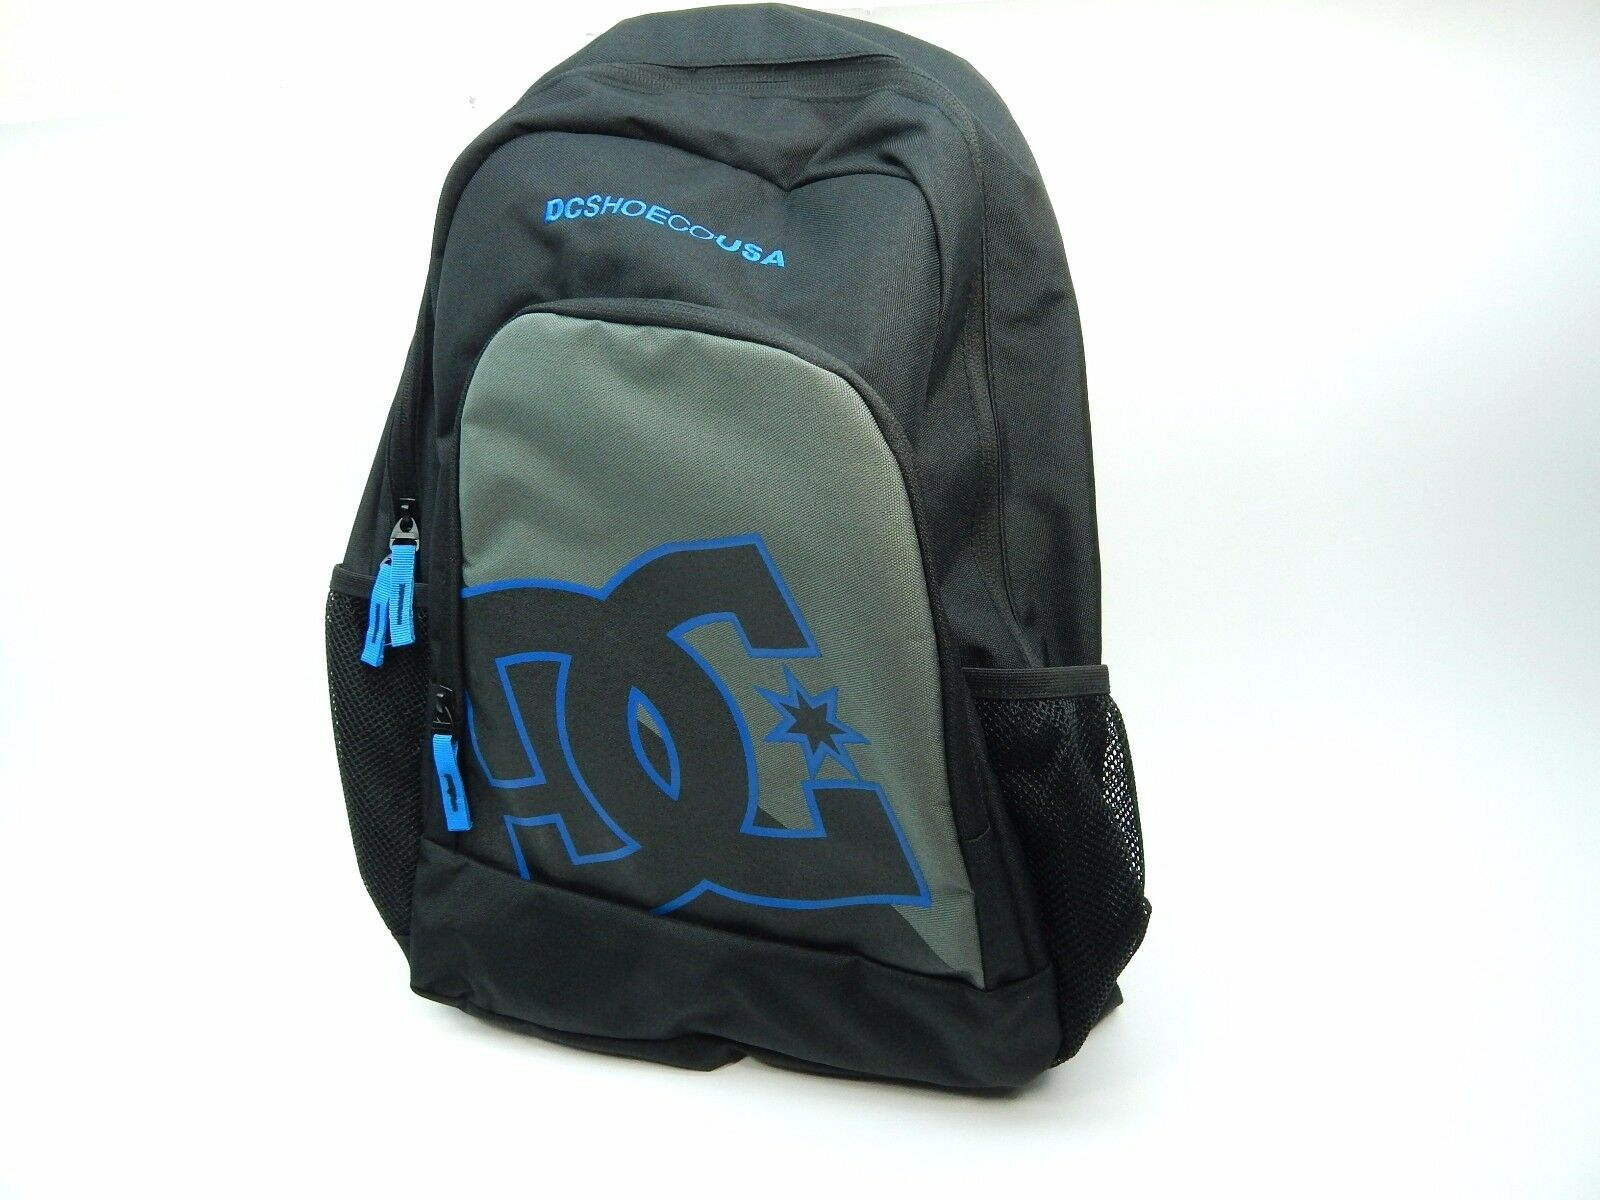 4c394e484dfe DC shoes Backpack New kid style 9153040801 black blue grey фото